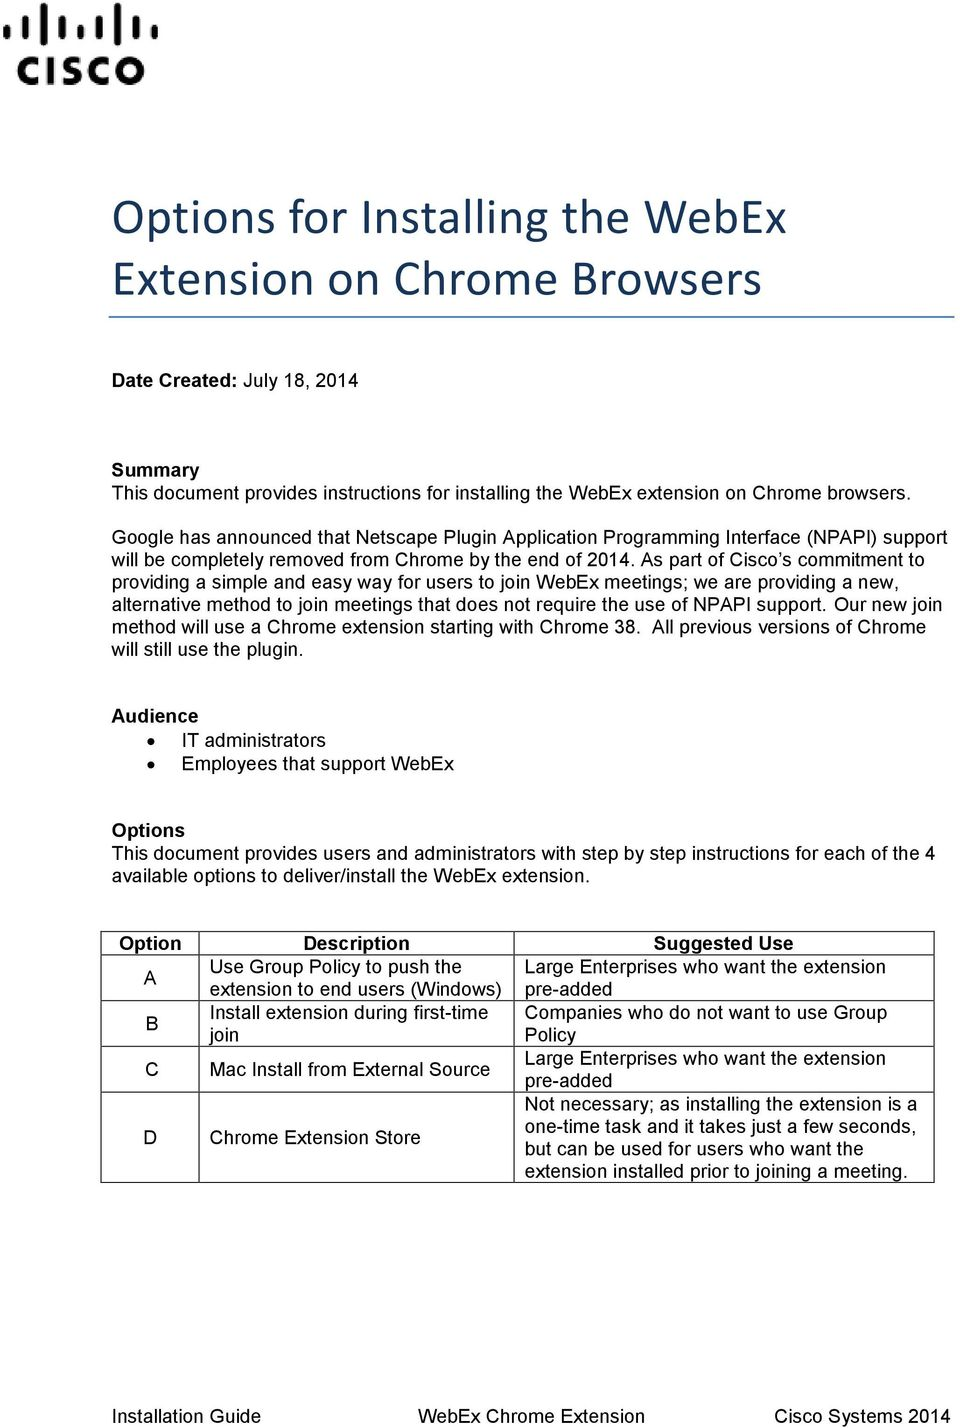 Options for Installing the WebEx Extension on Chrome